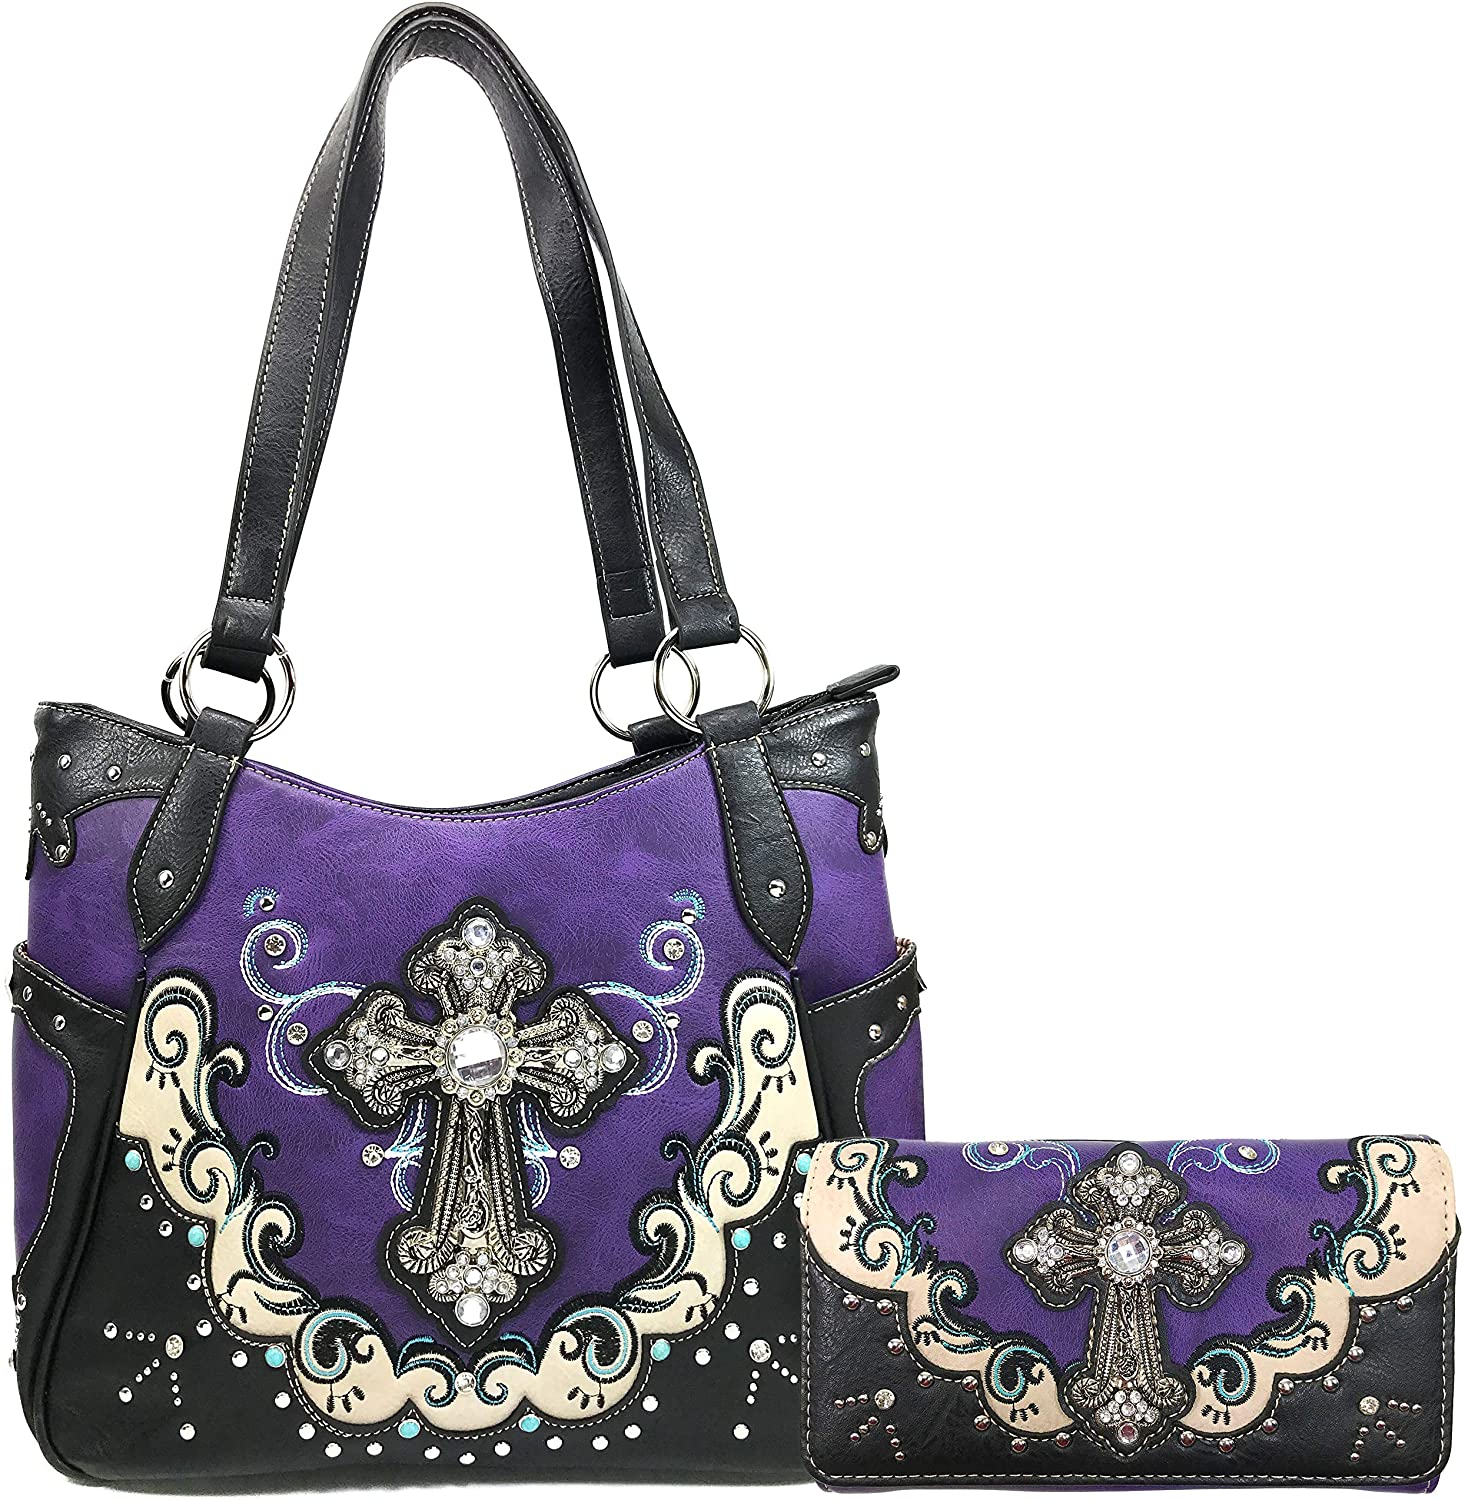 Justin West Mustang Cross Handbag Purse For Girls Women Concealed Carry